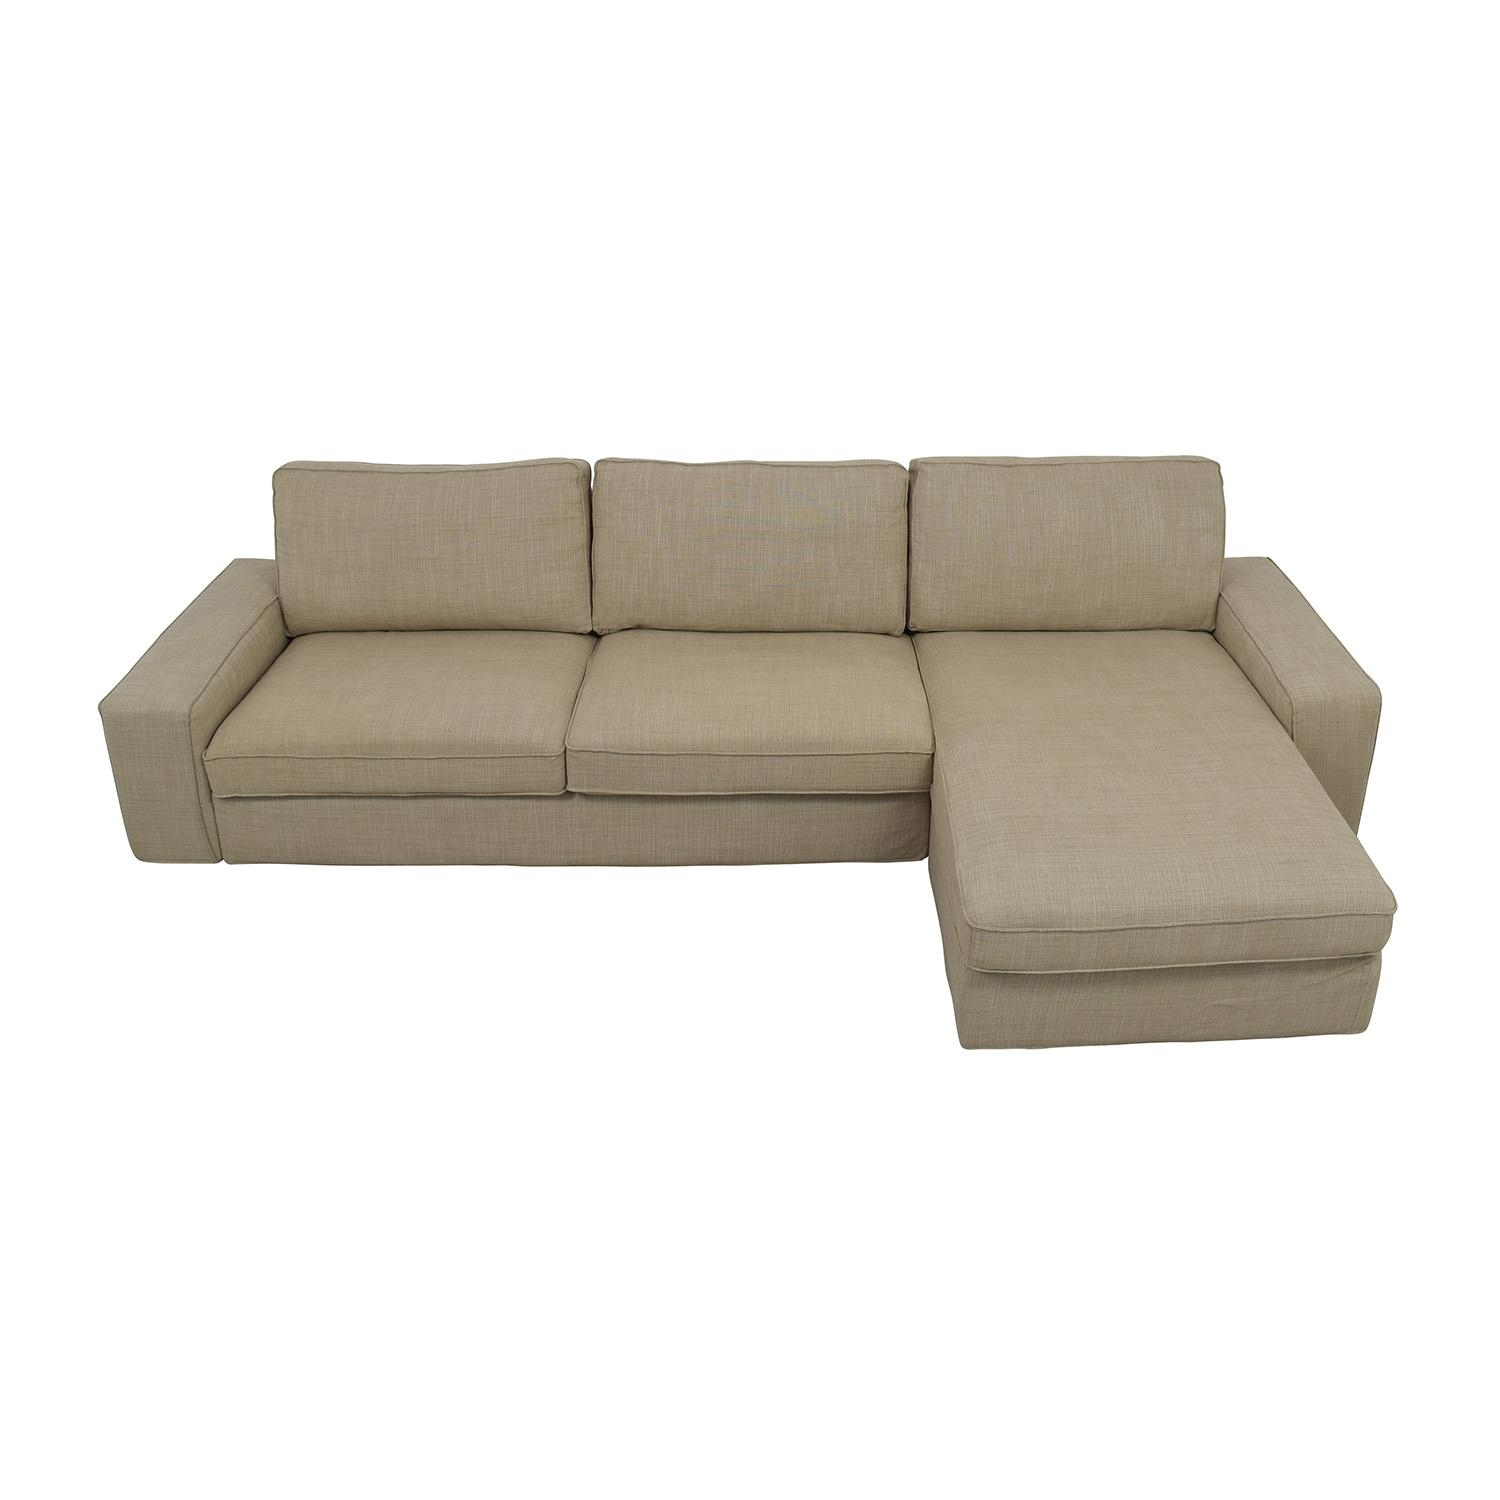 35% Off – Ikea Ikea Kivik Sectional In Hillared Beige / Sofas Throughout Beige Sofas (View 17 of 20)